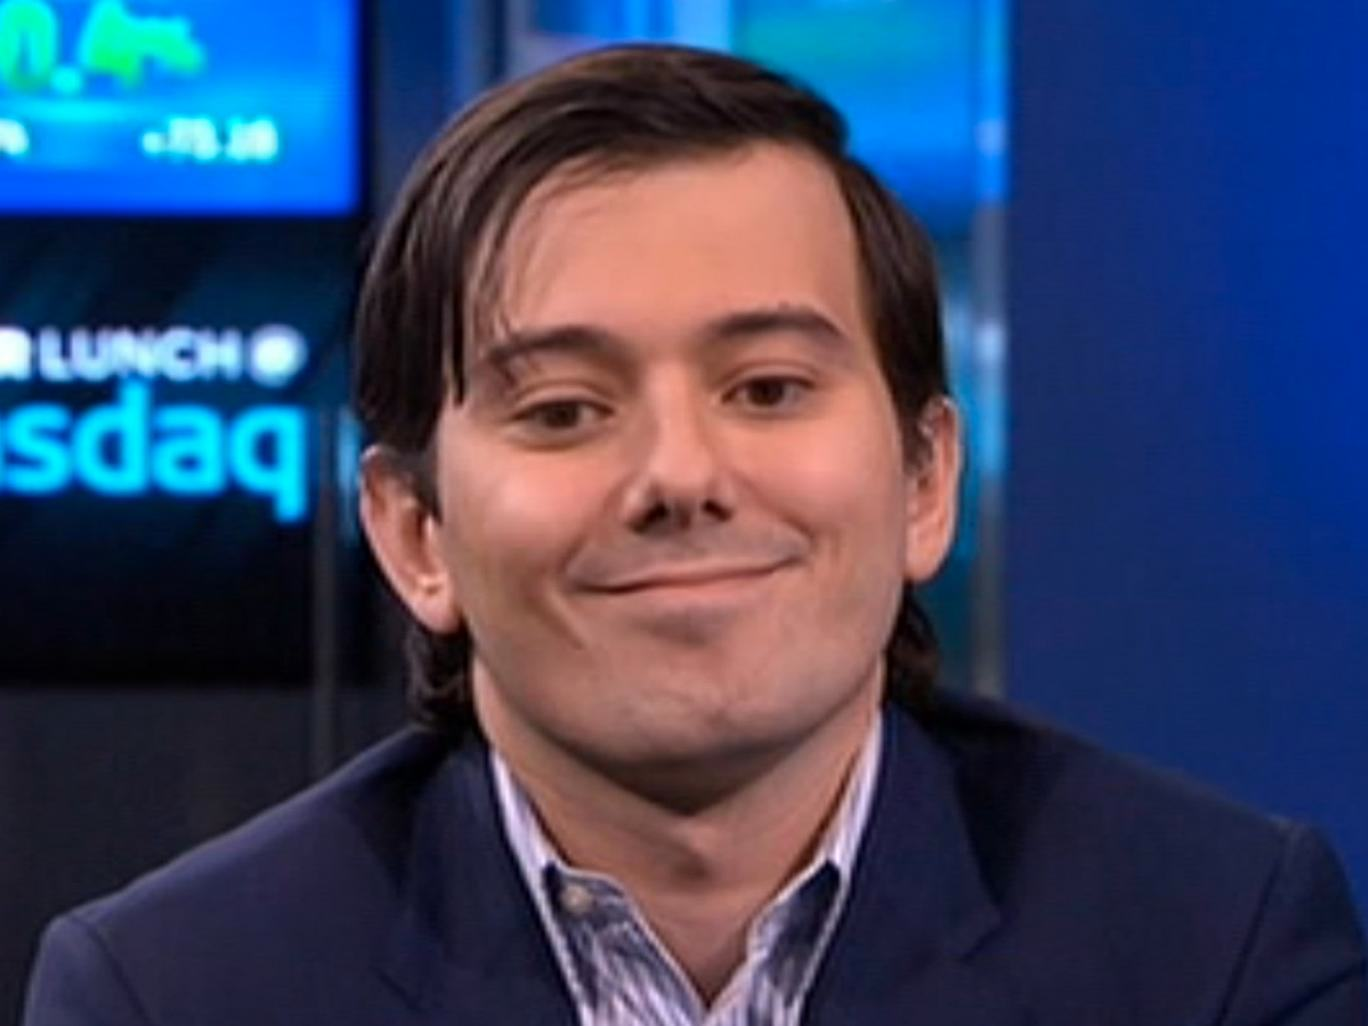 Shkreli 4 The Most Hated Man On The Internet Raises The Price Of Another Drug